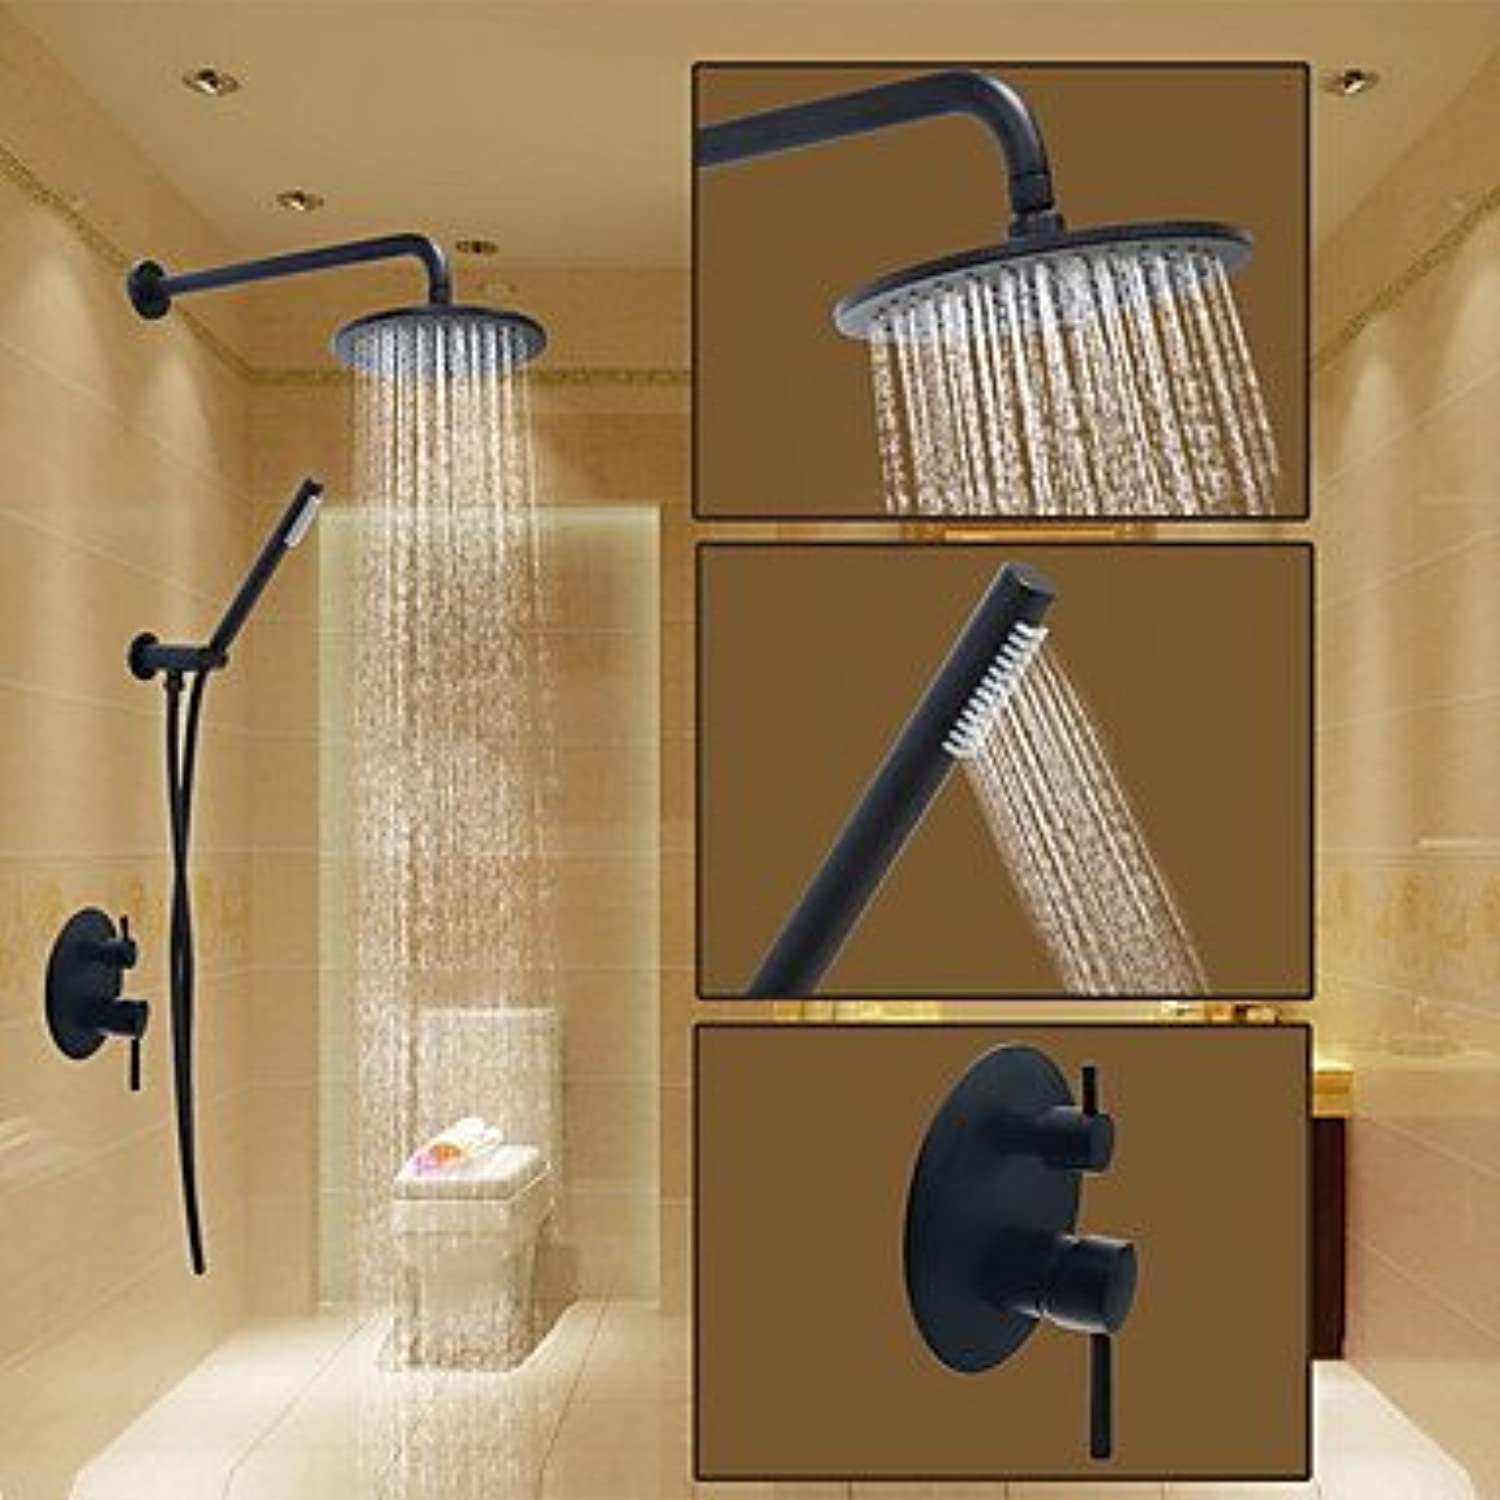 Round Shower System Wall Mount Ceramic Valve Shower Faucet